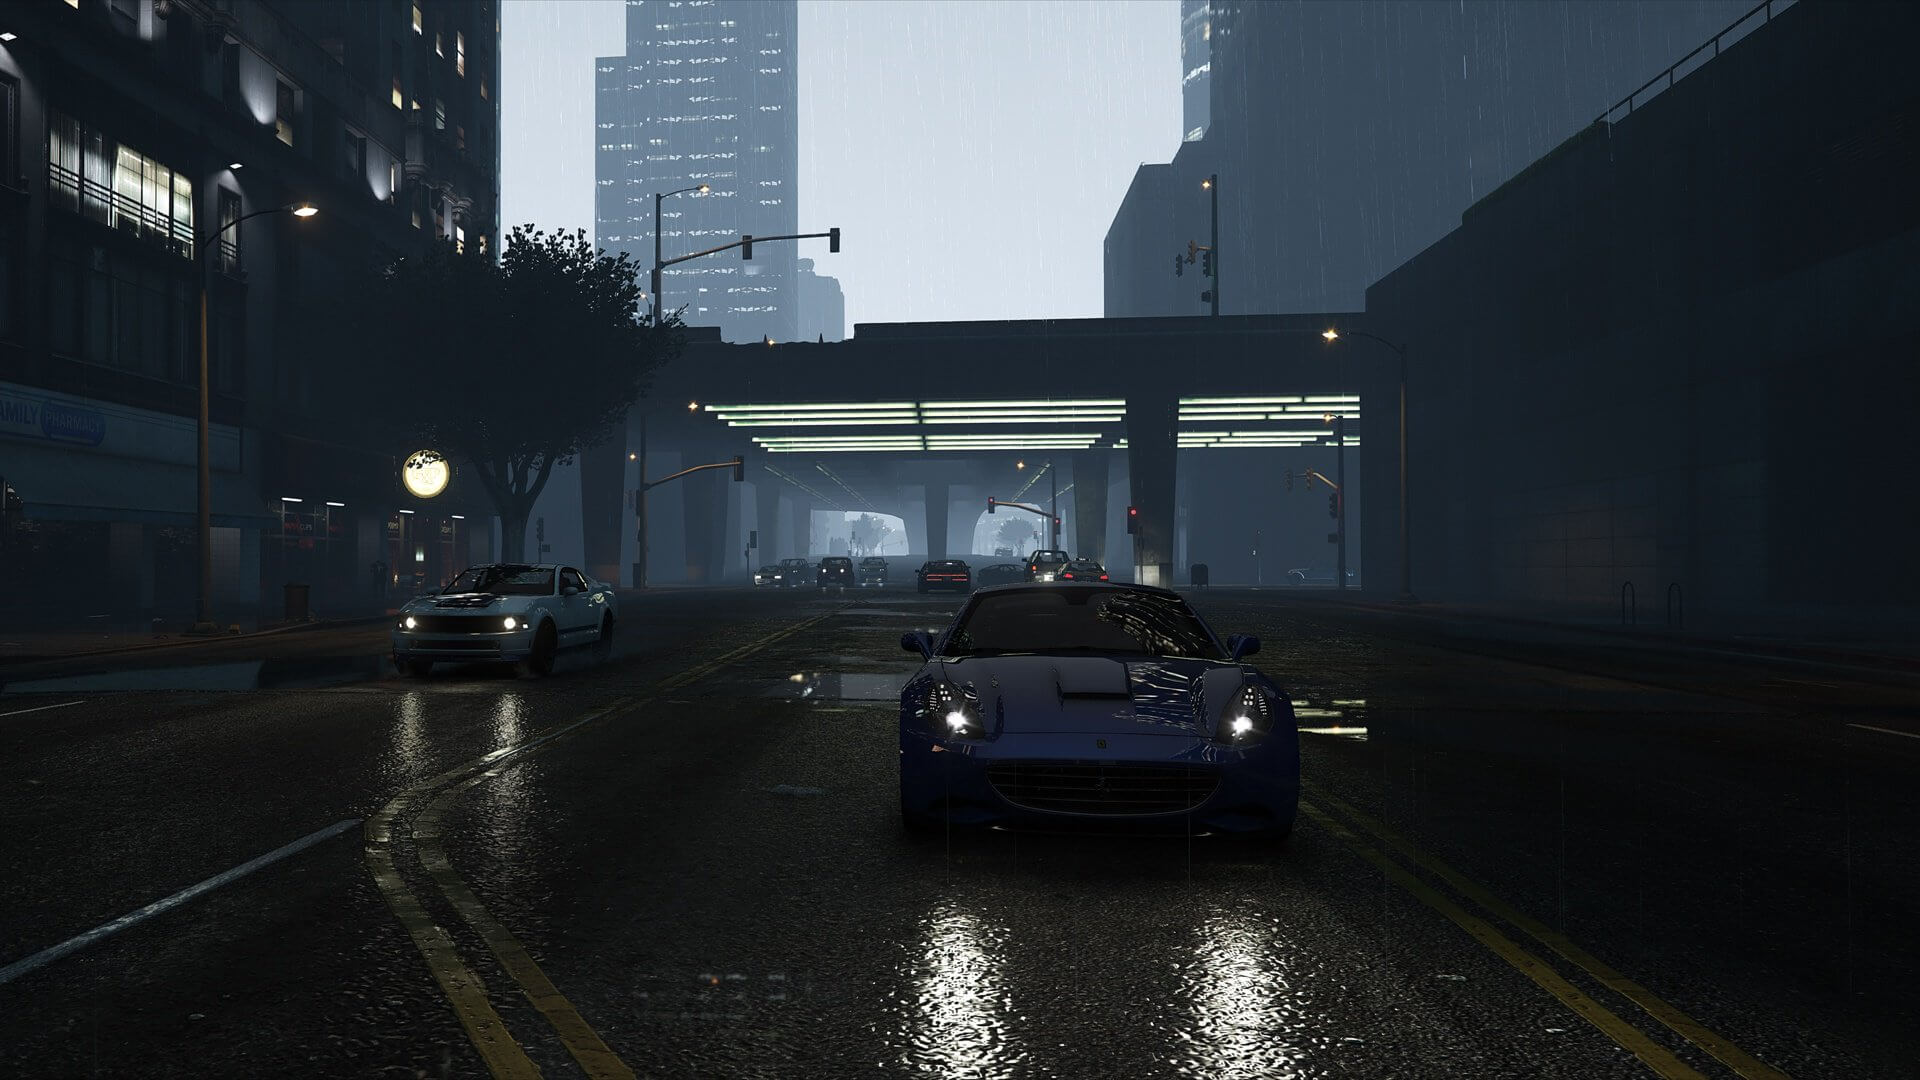 Grand Theft Auto 5 NaturalVision Remastered Mod looks gorgeous and